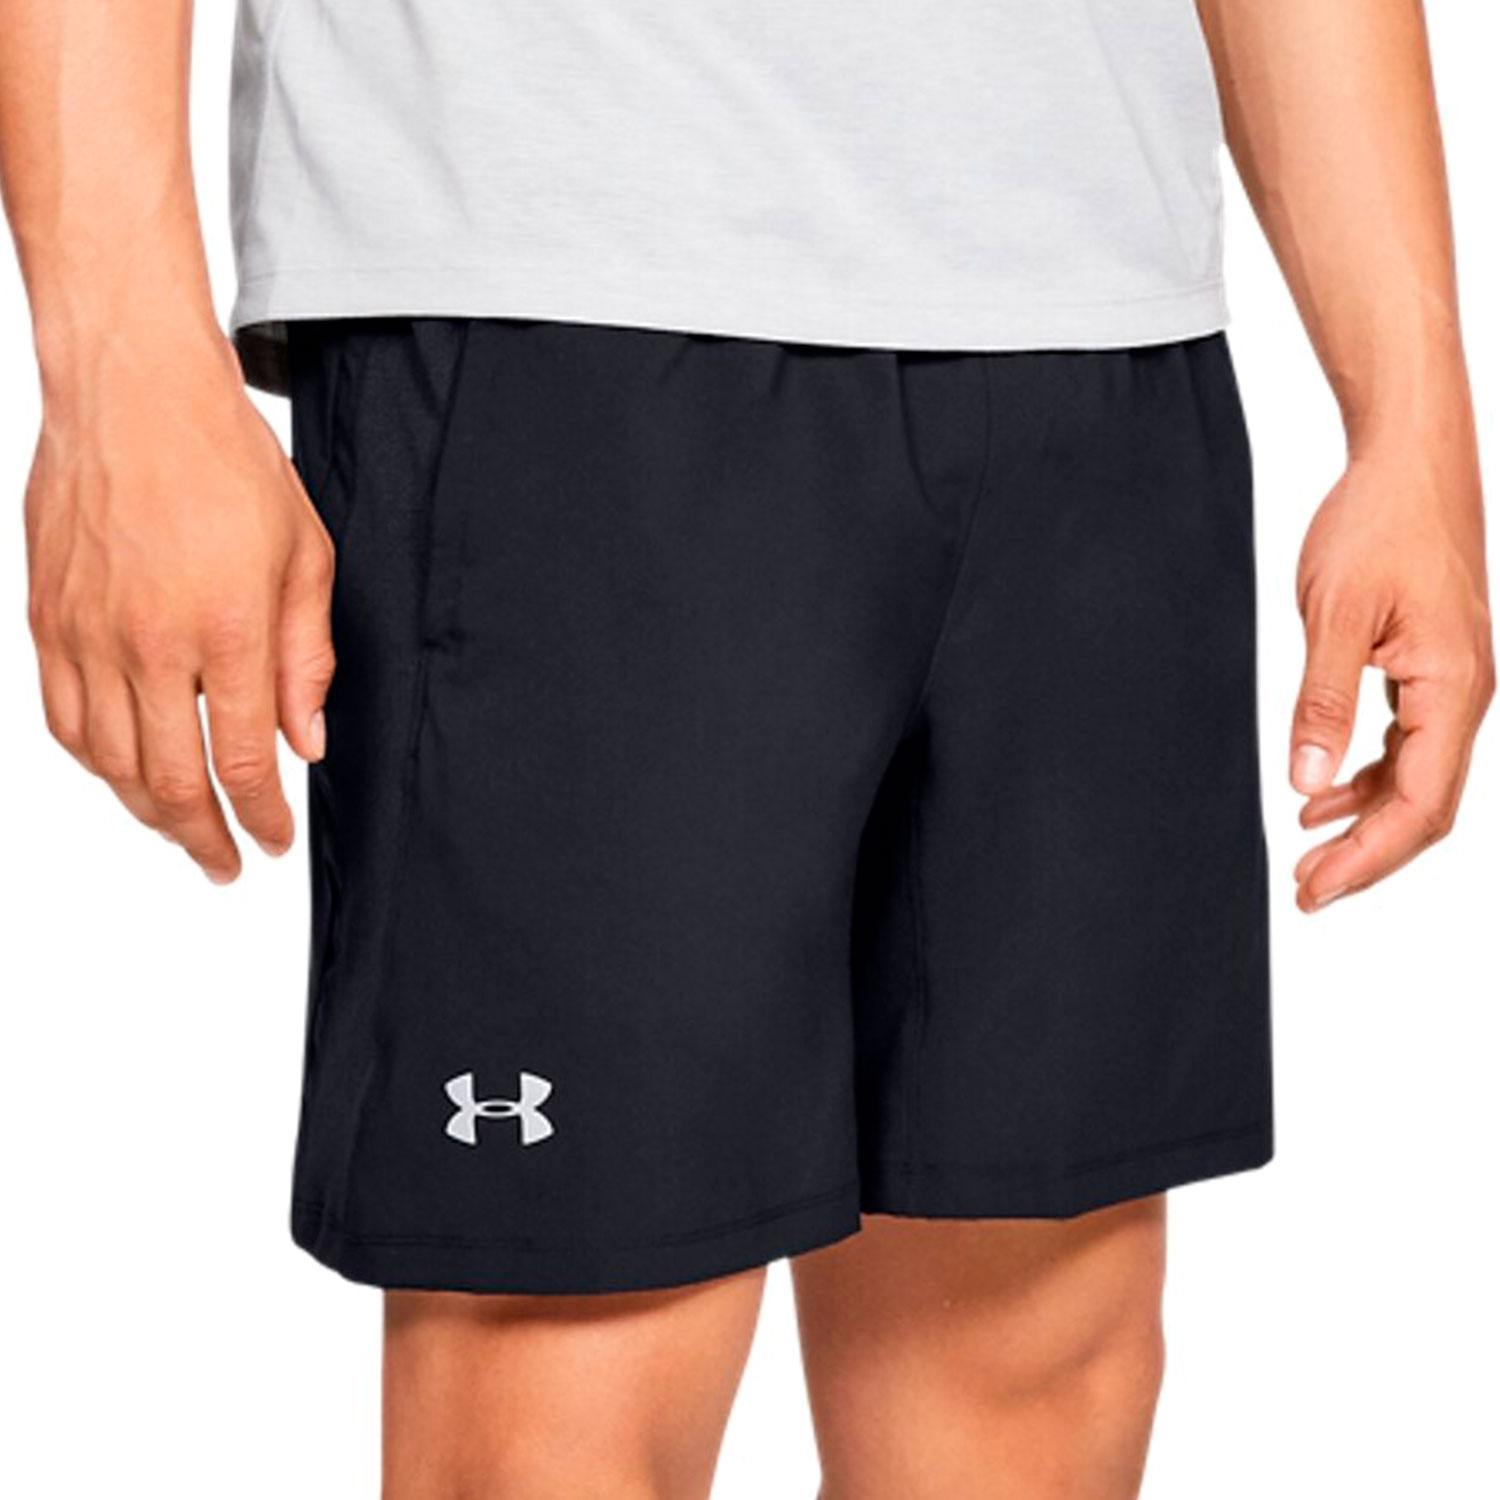 Pantaloncini da corsa lunghi da uomo Under Armour Launch SW 2 In 1 Nero colore